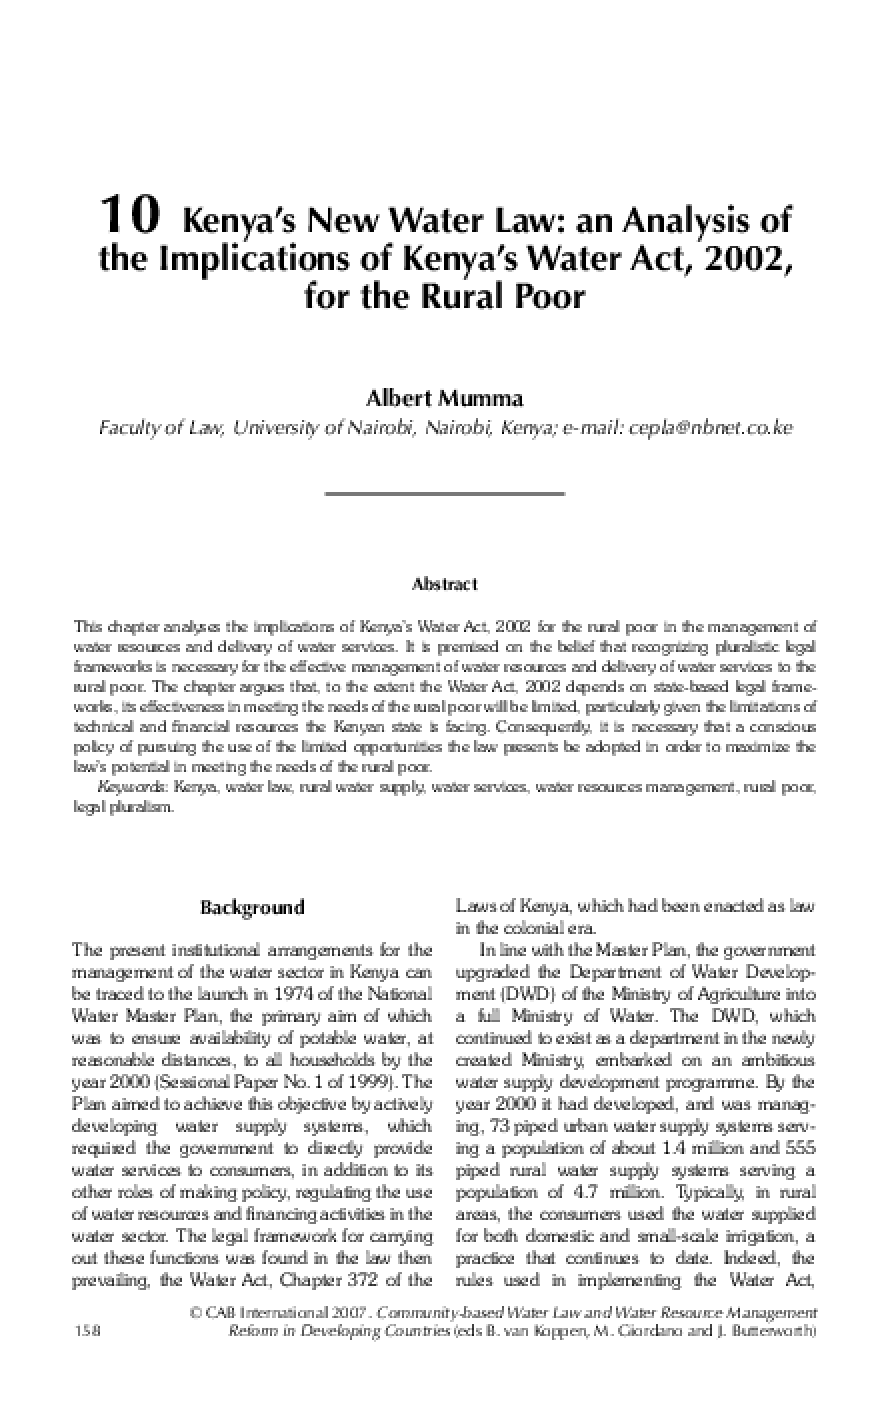 Kenya's New Water Law: An Analysis of the Implications of Kenya's Water Act, 2002, for the Rural Poor